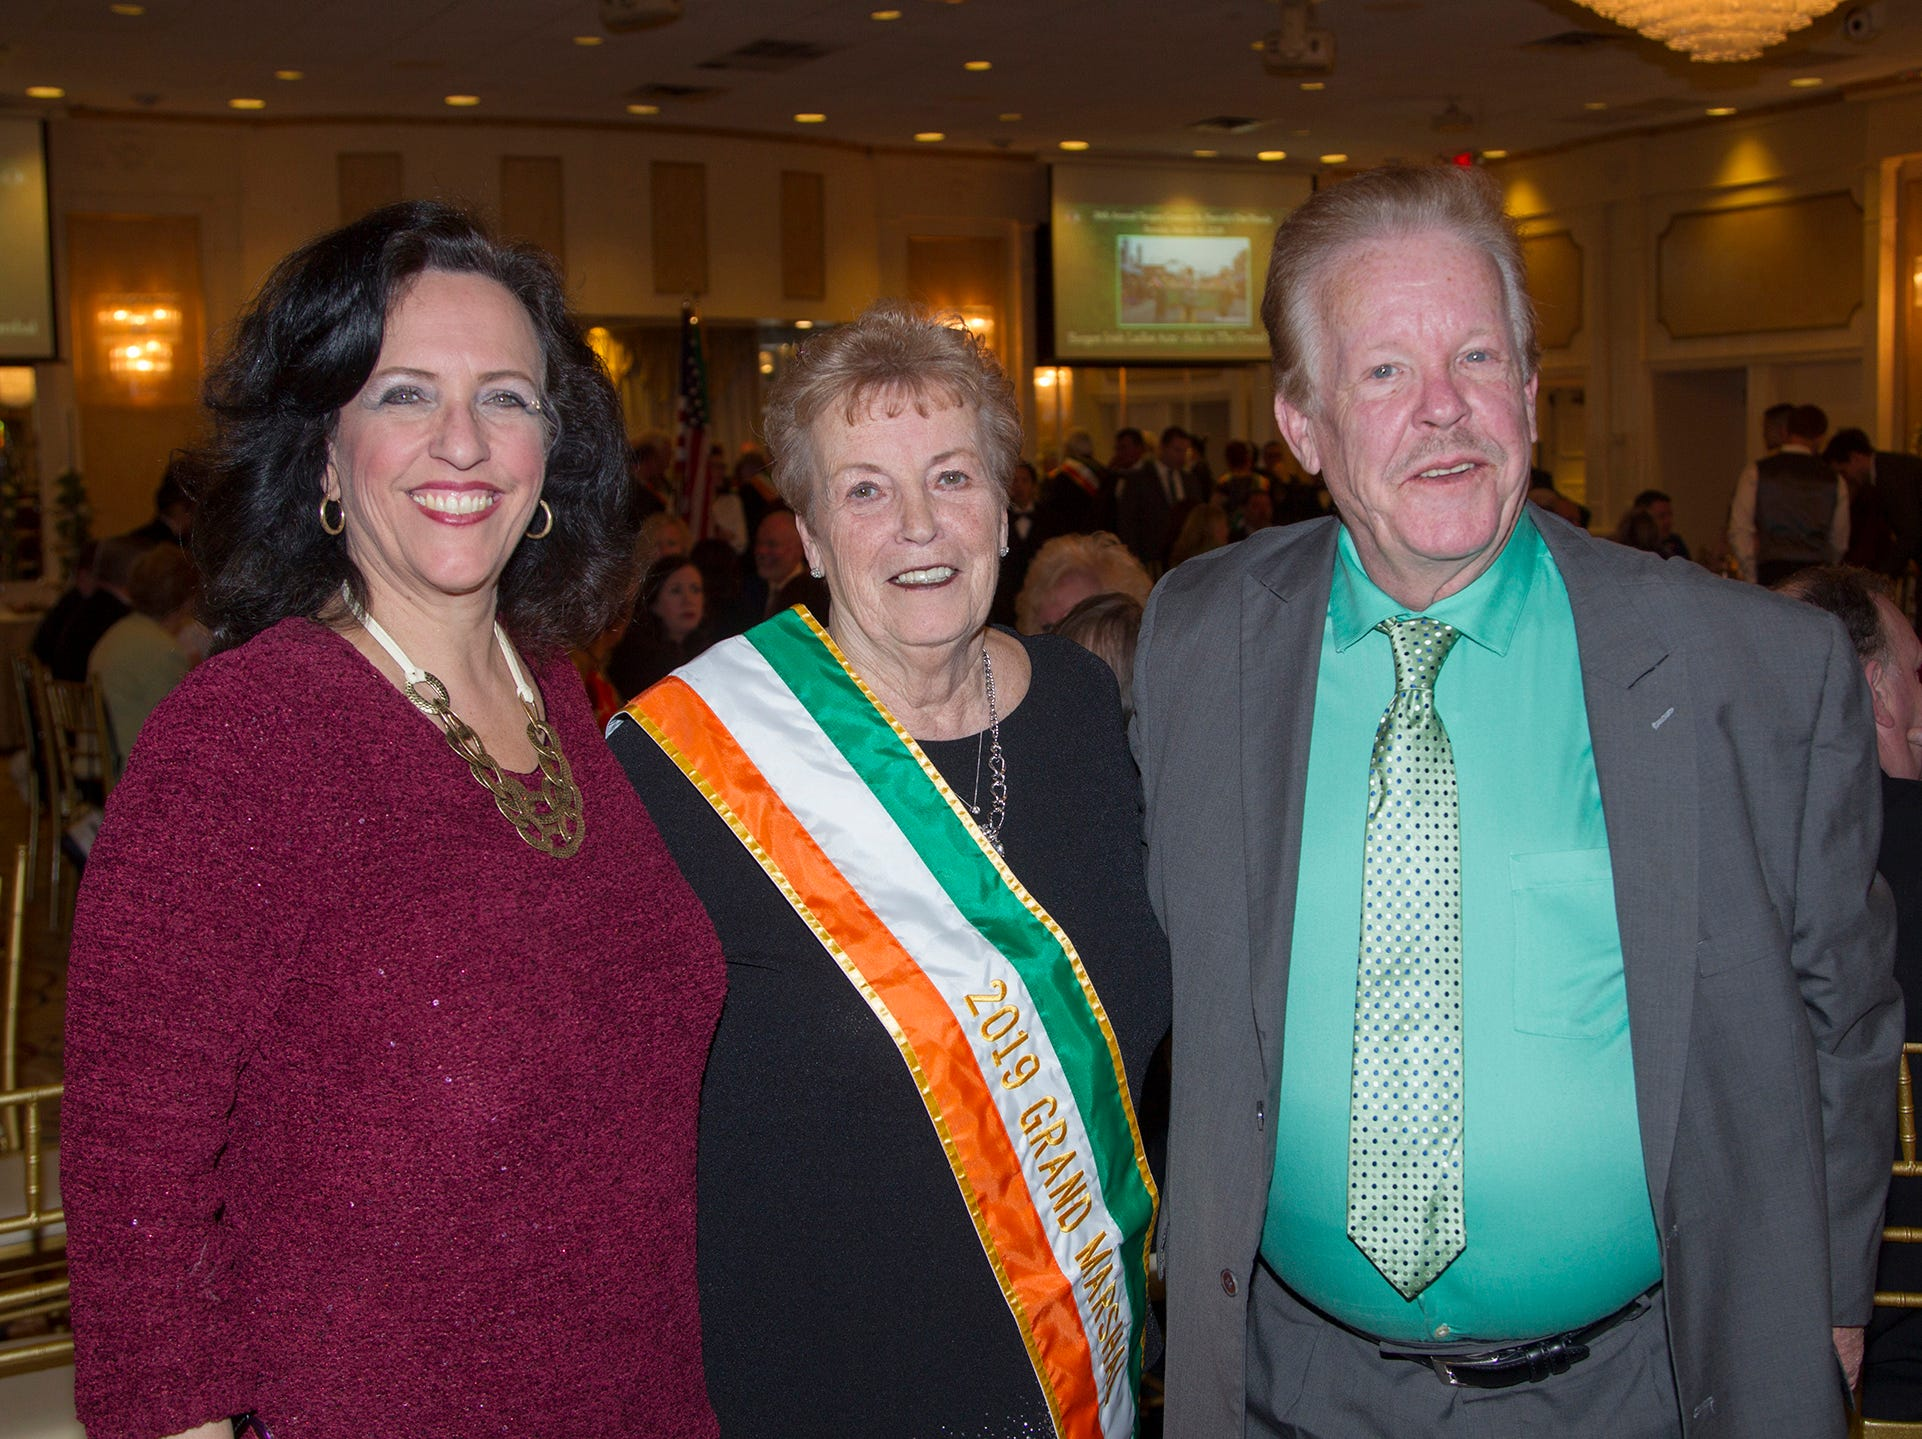 Karen Early Conway, Patircia McLoughlin, Jimmy Early. 38th Annual St. Patrick's Day parade Installation Dance at The Graycliff in Moonachie. 2/23/2019